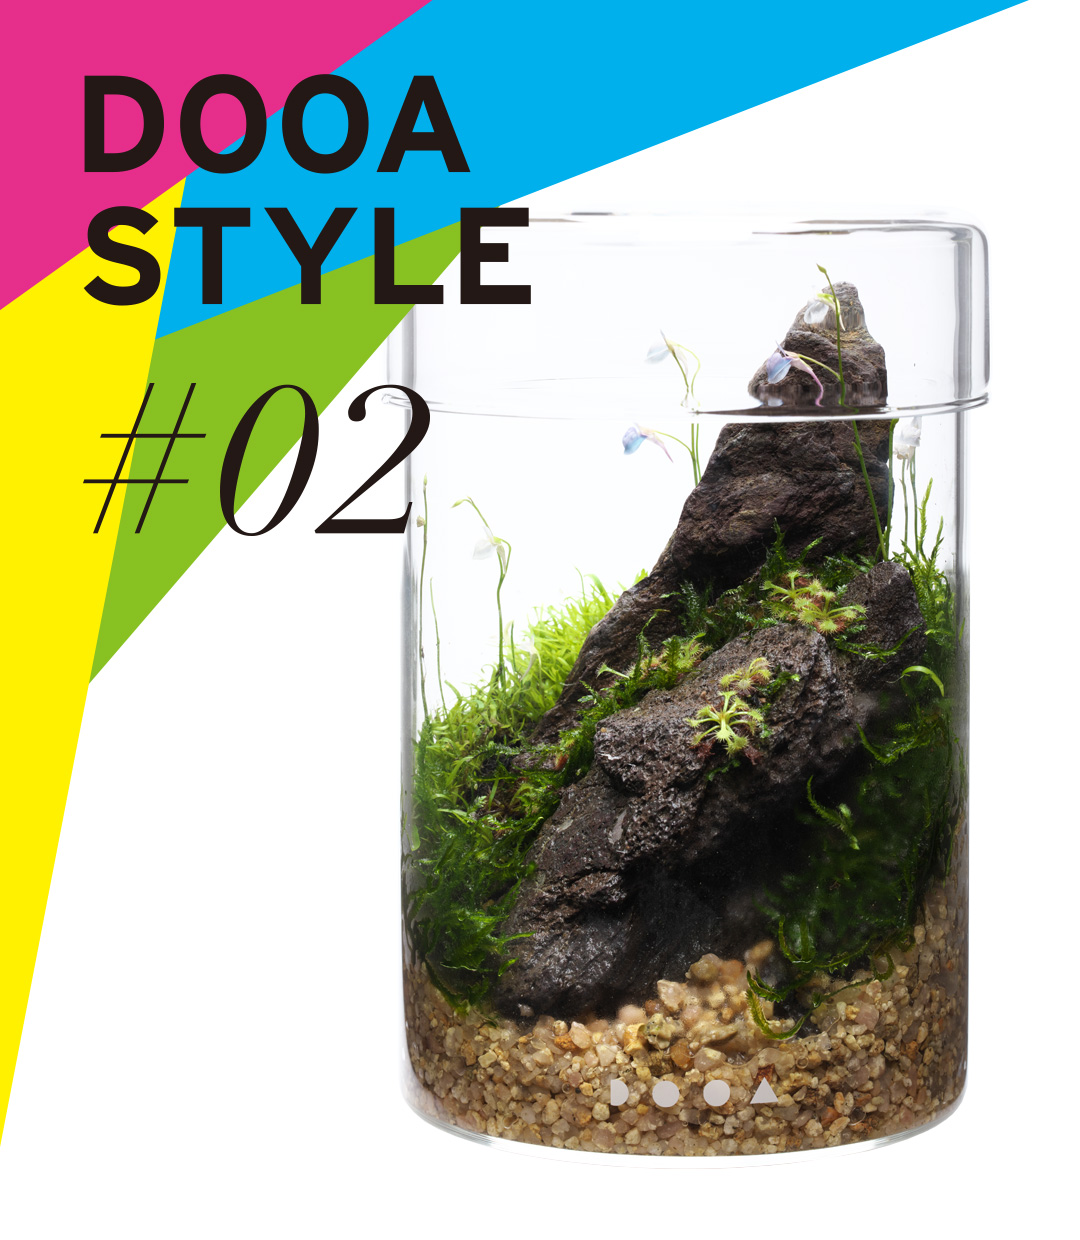 DOOA STYLE #2 'Small container that you can still have fun creating layouts with'